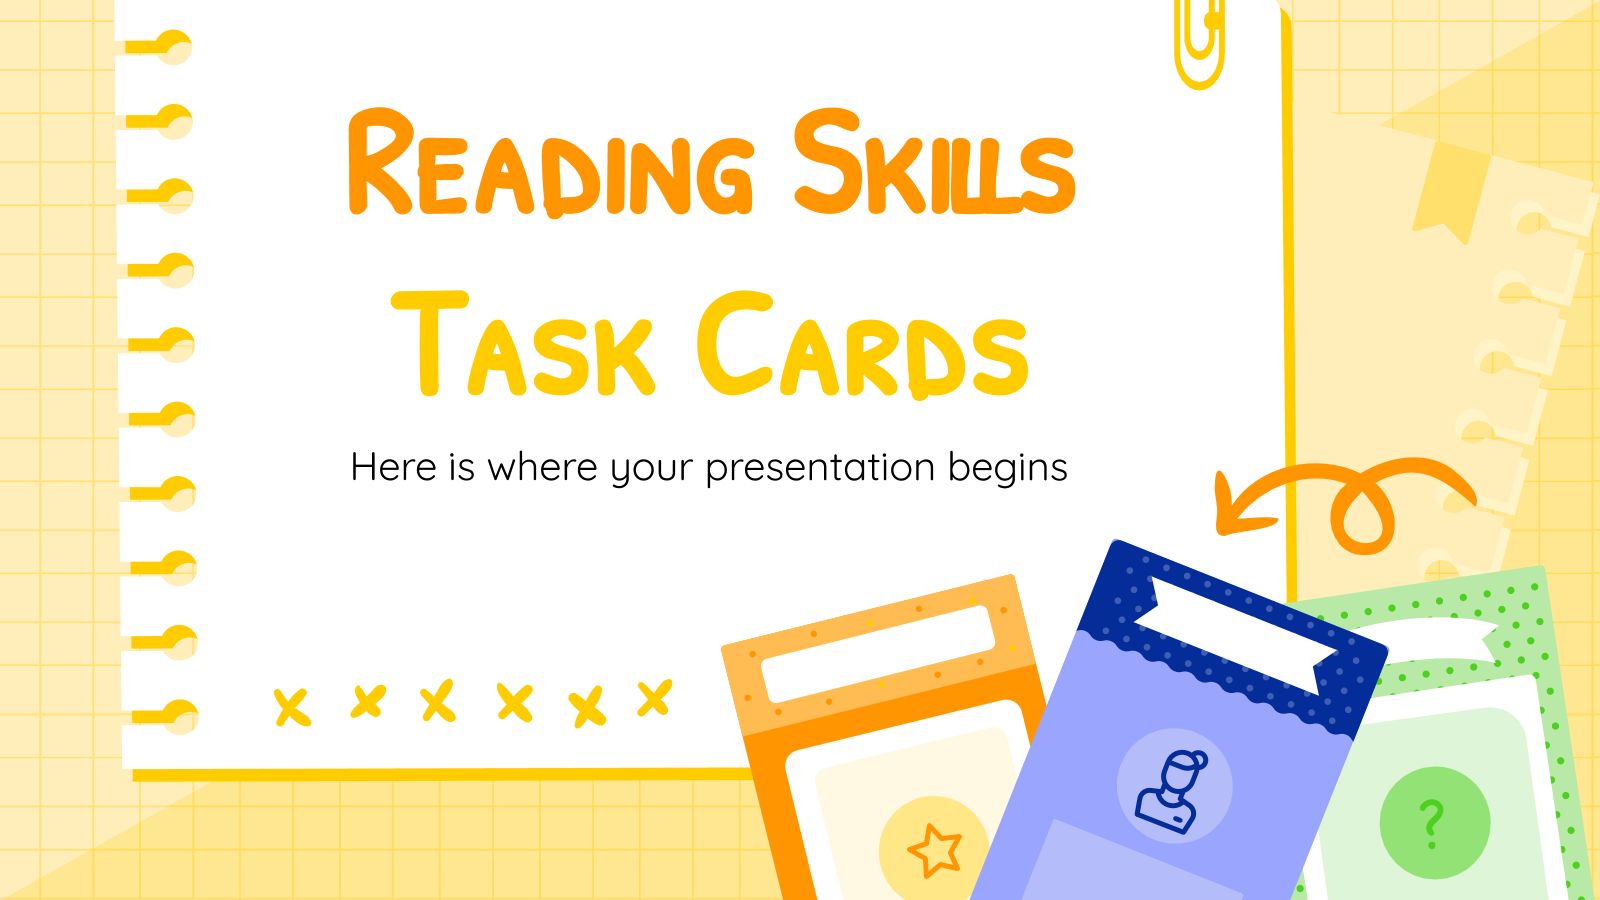 Reading Skills Task Cards presentation template